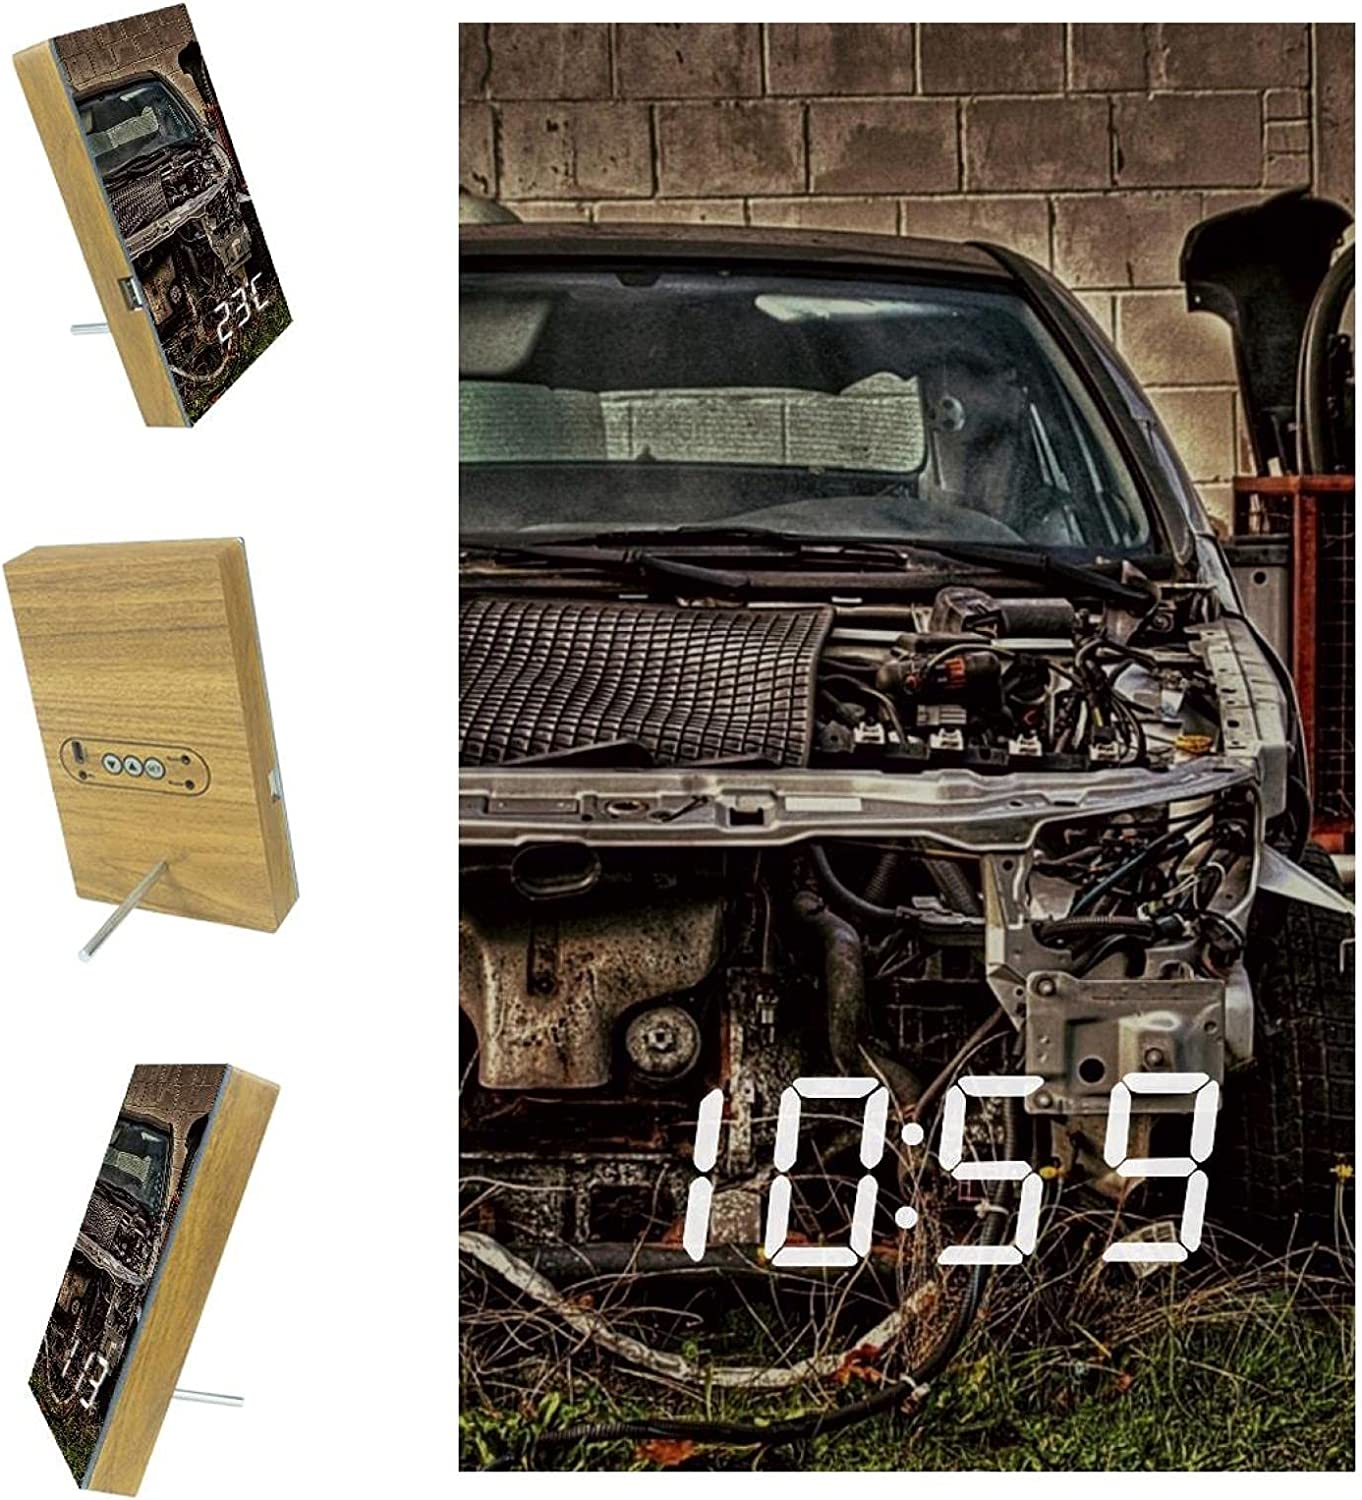 AISSO Old San Jose Mall Abandoned Vehicle LED Sale special price Alarm for Clocks Digital Bedroom